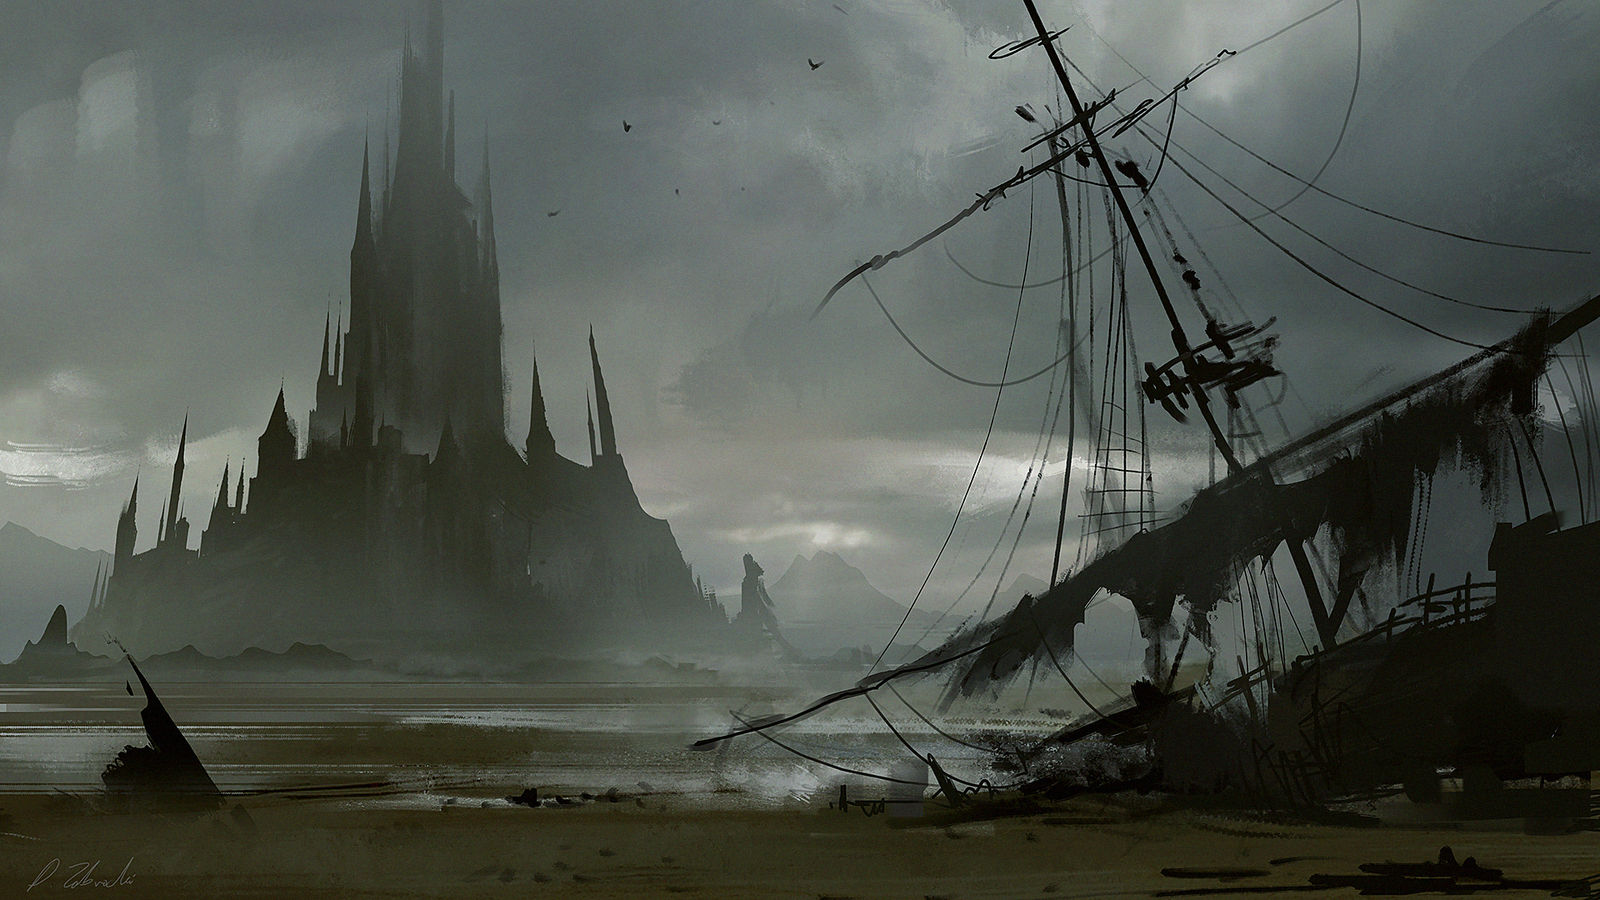 Island Castle and destroyed ship by daRoz